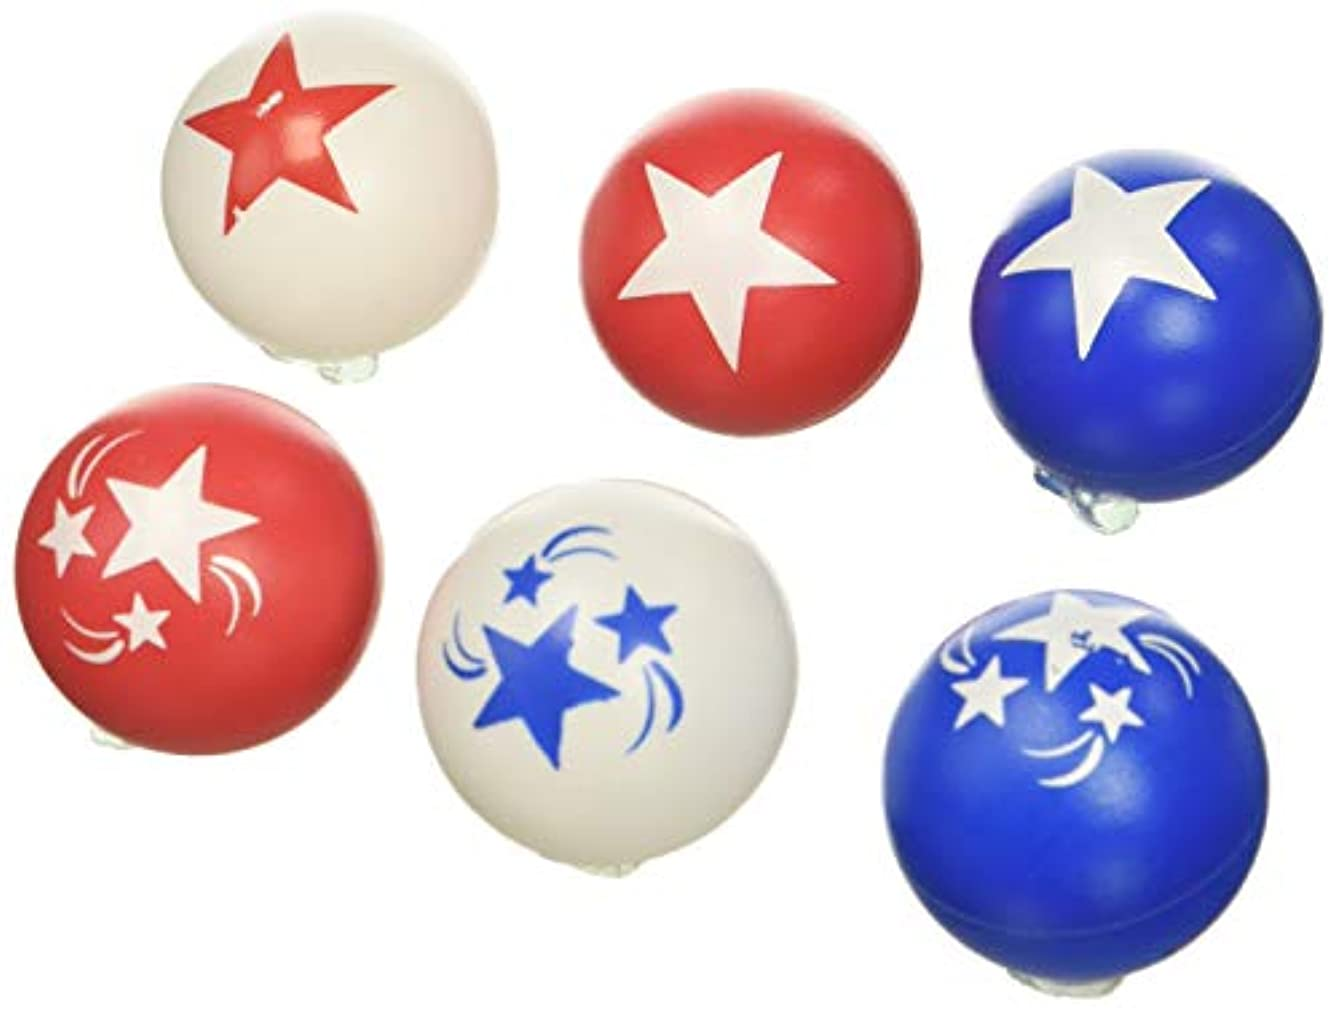 Patriotic Party Pong Balls, 6 Ct.